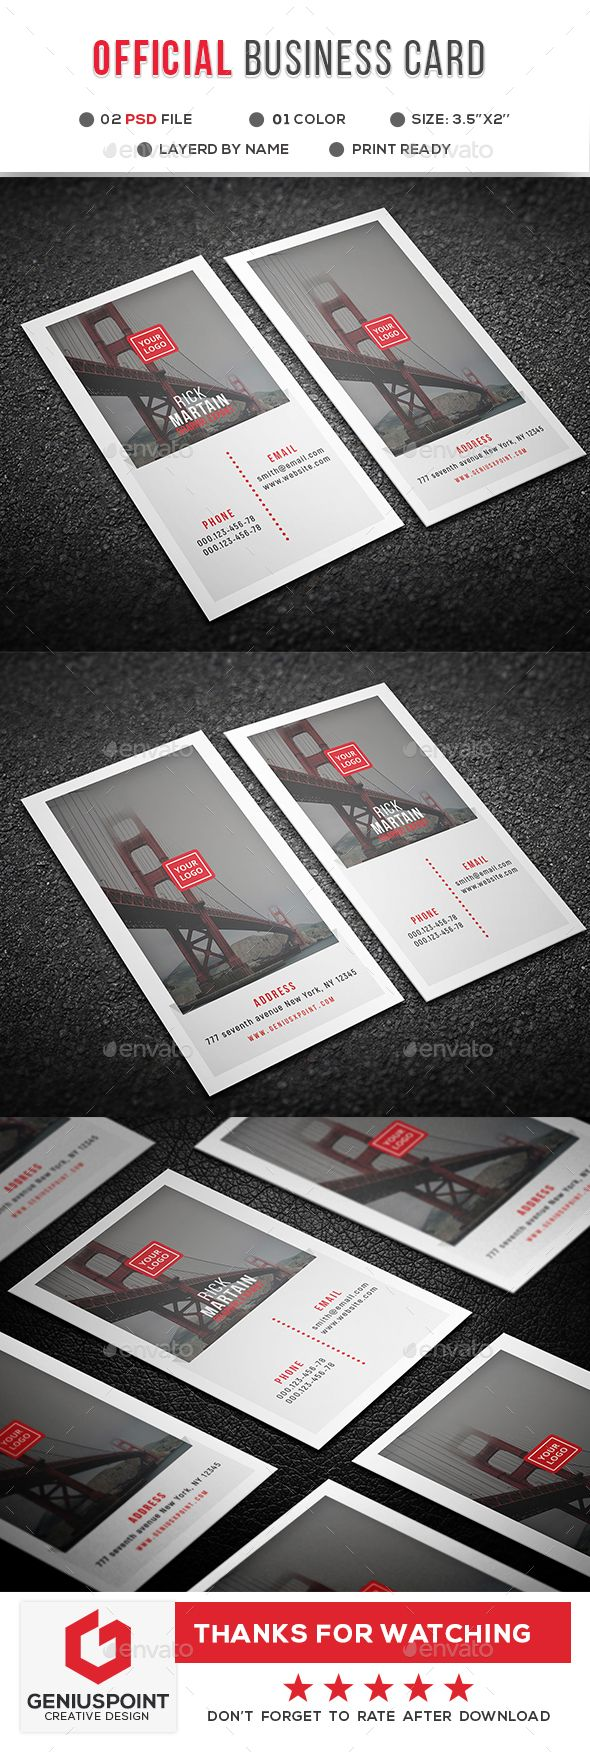 6262 best business card templates images on pinterest business official business card reheart Images